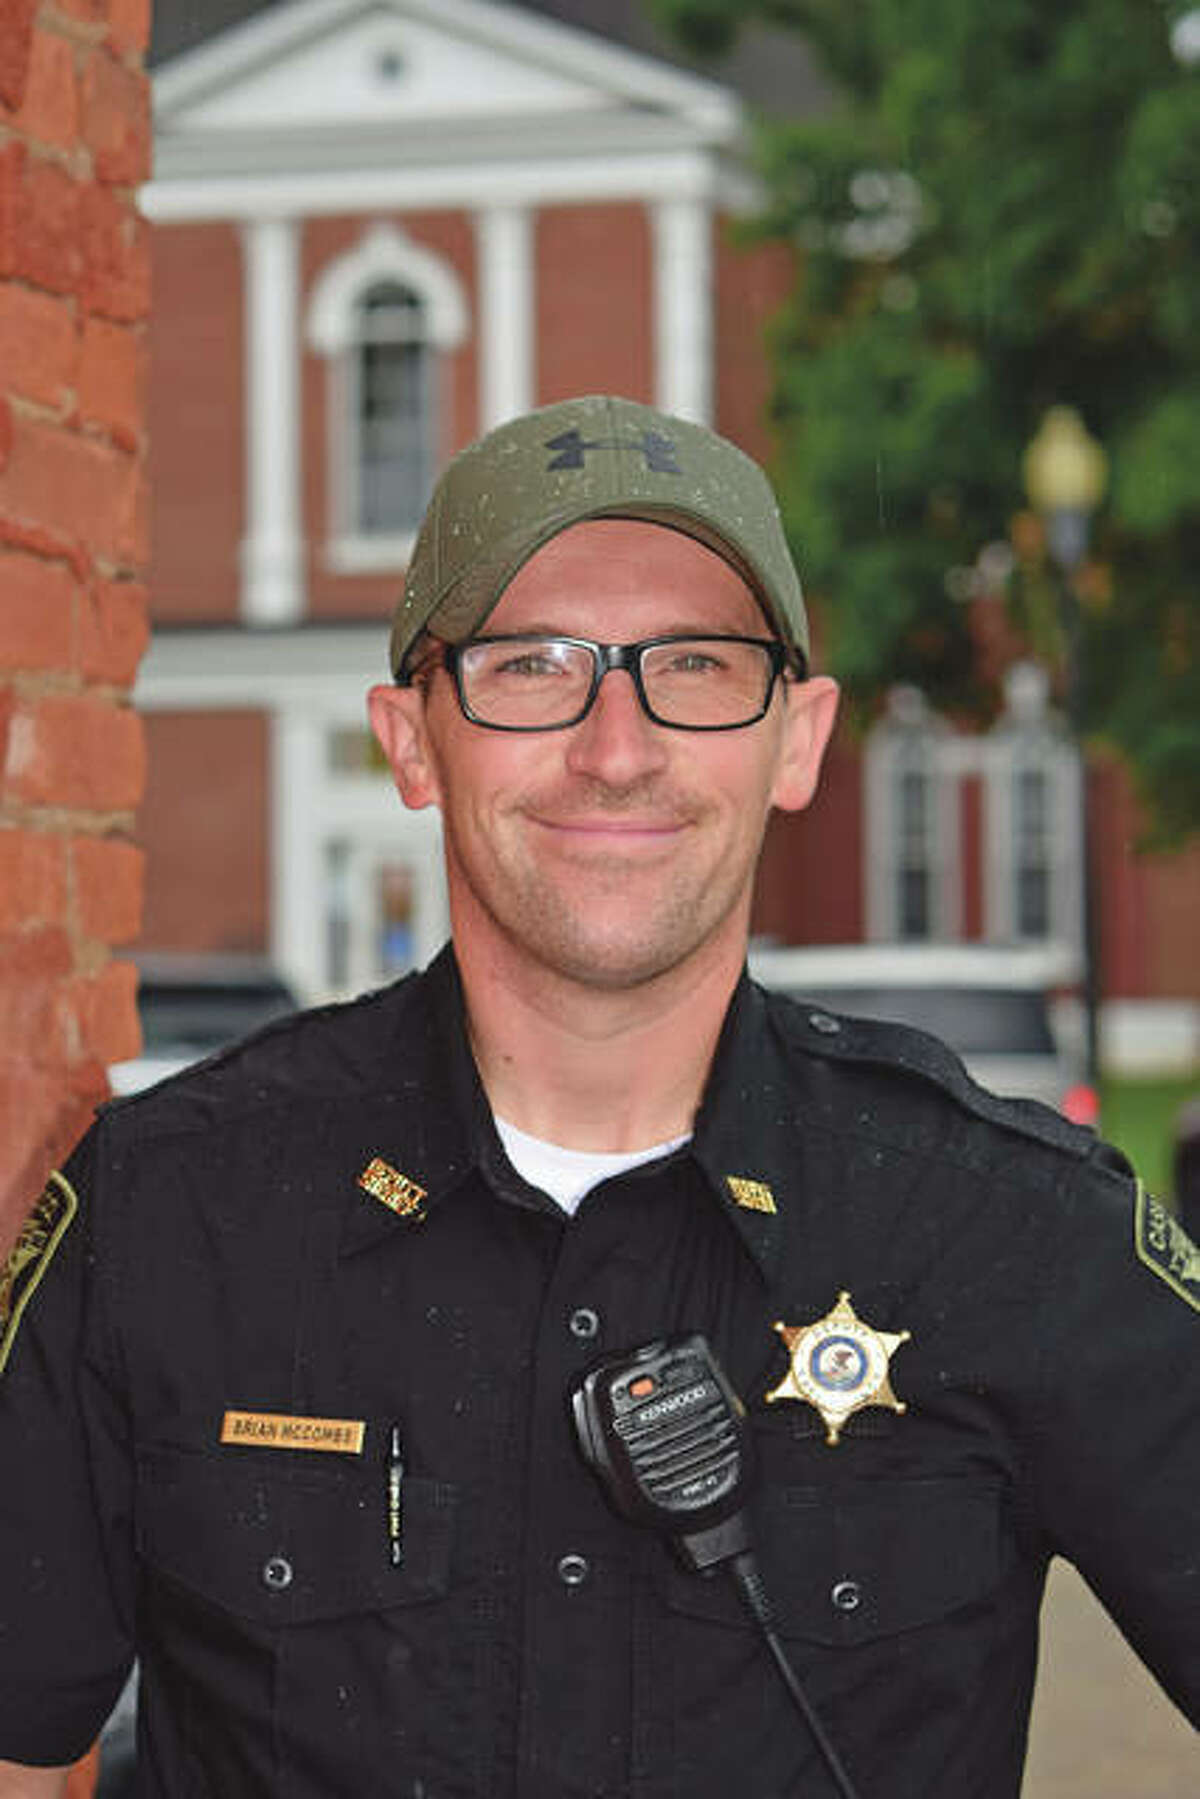 Cass County Sheriff's Deputy Brian McCombs in downtown Virginia, with the Cass County Courthouse in the background.